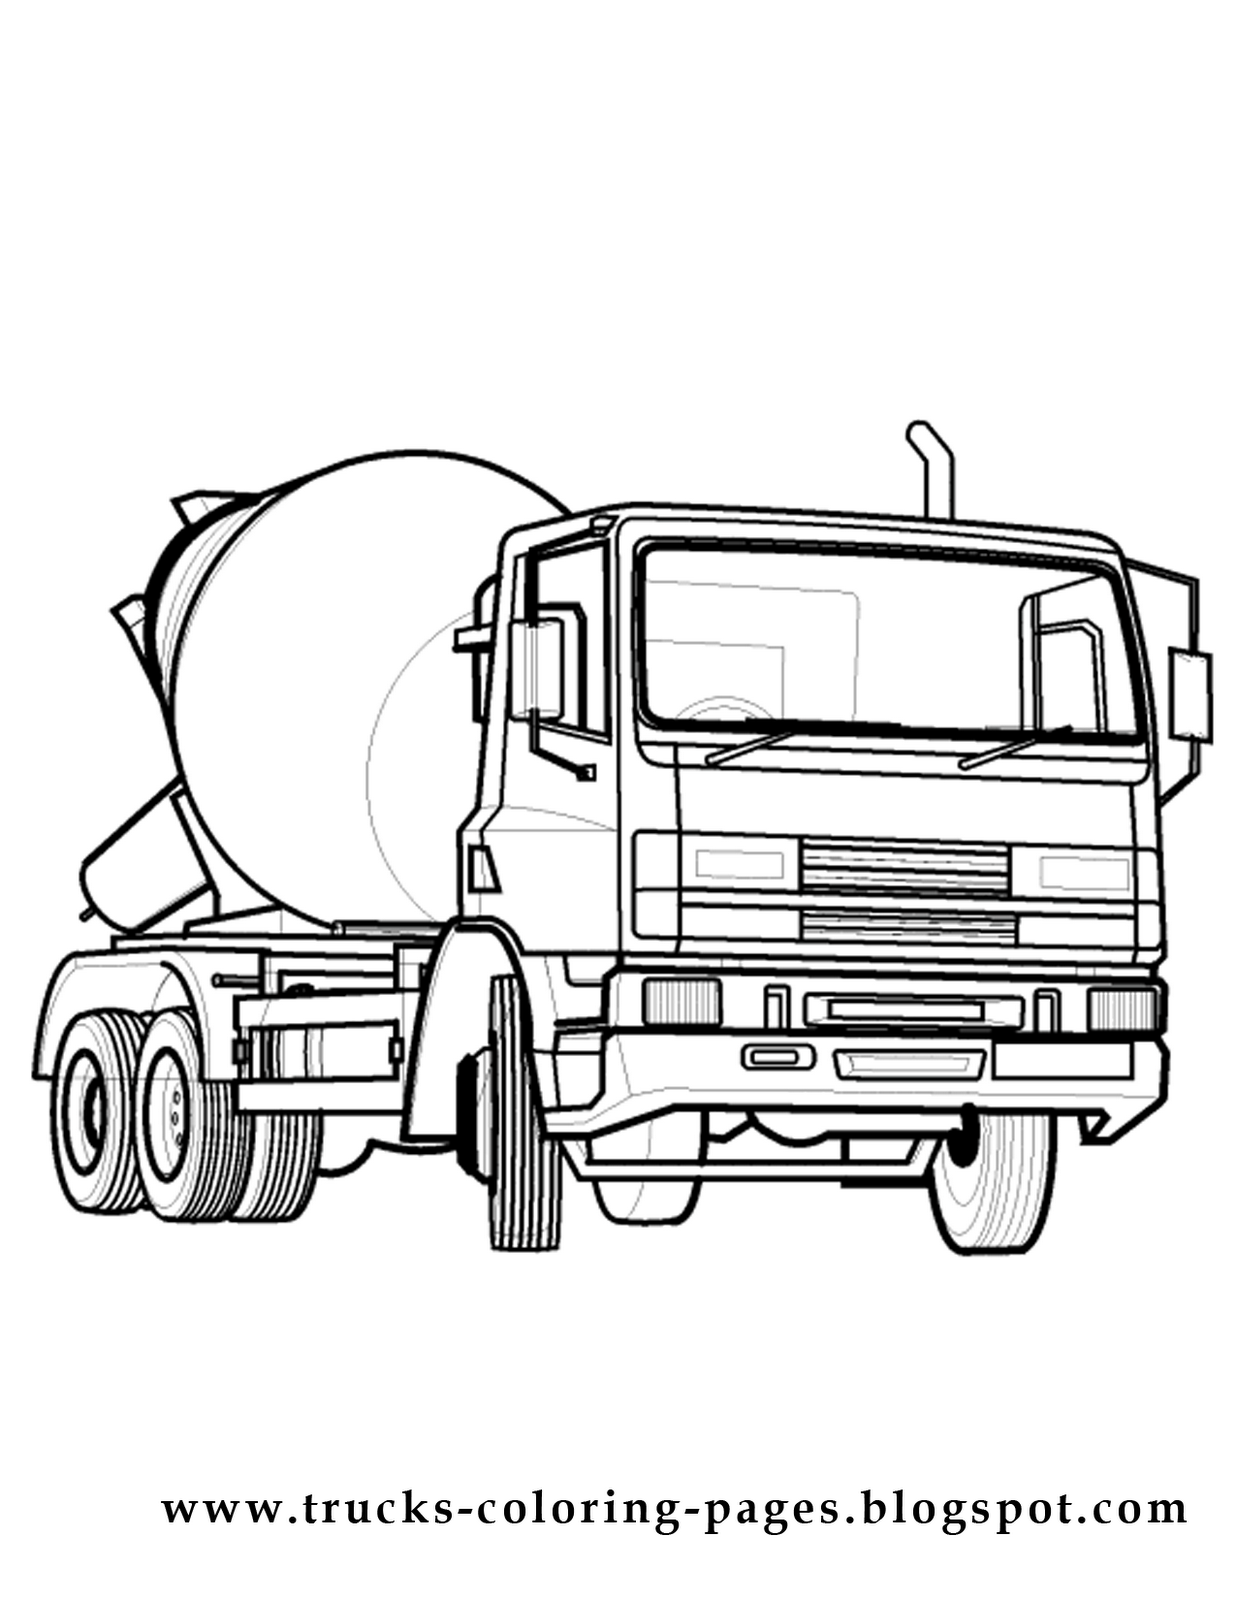 1236x1600 Truck Coloring Pages 1518x1029 Mack Page Free Printable